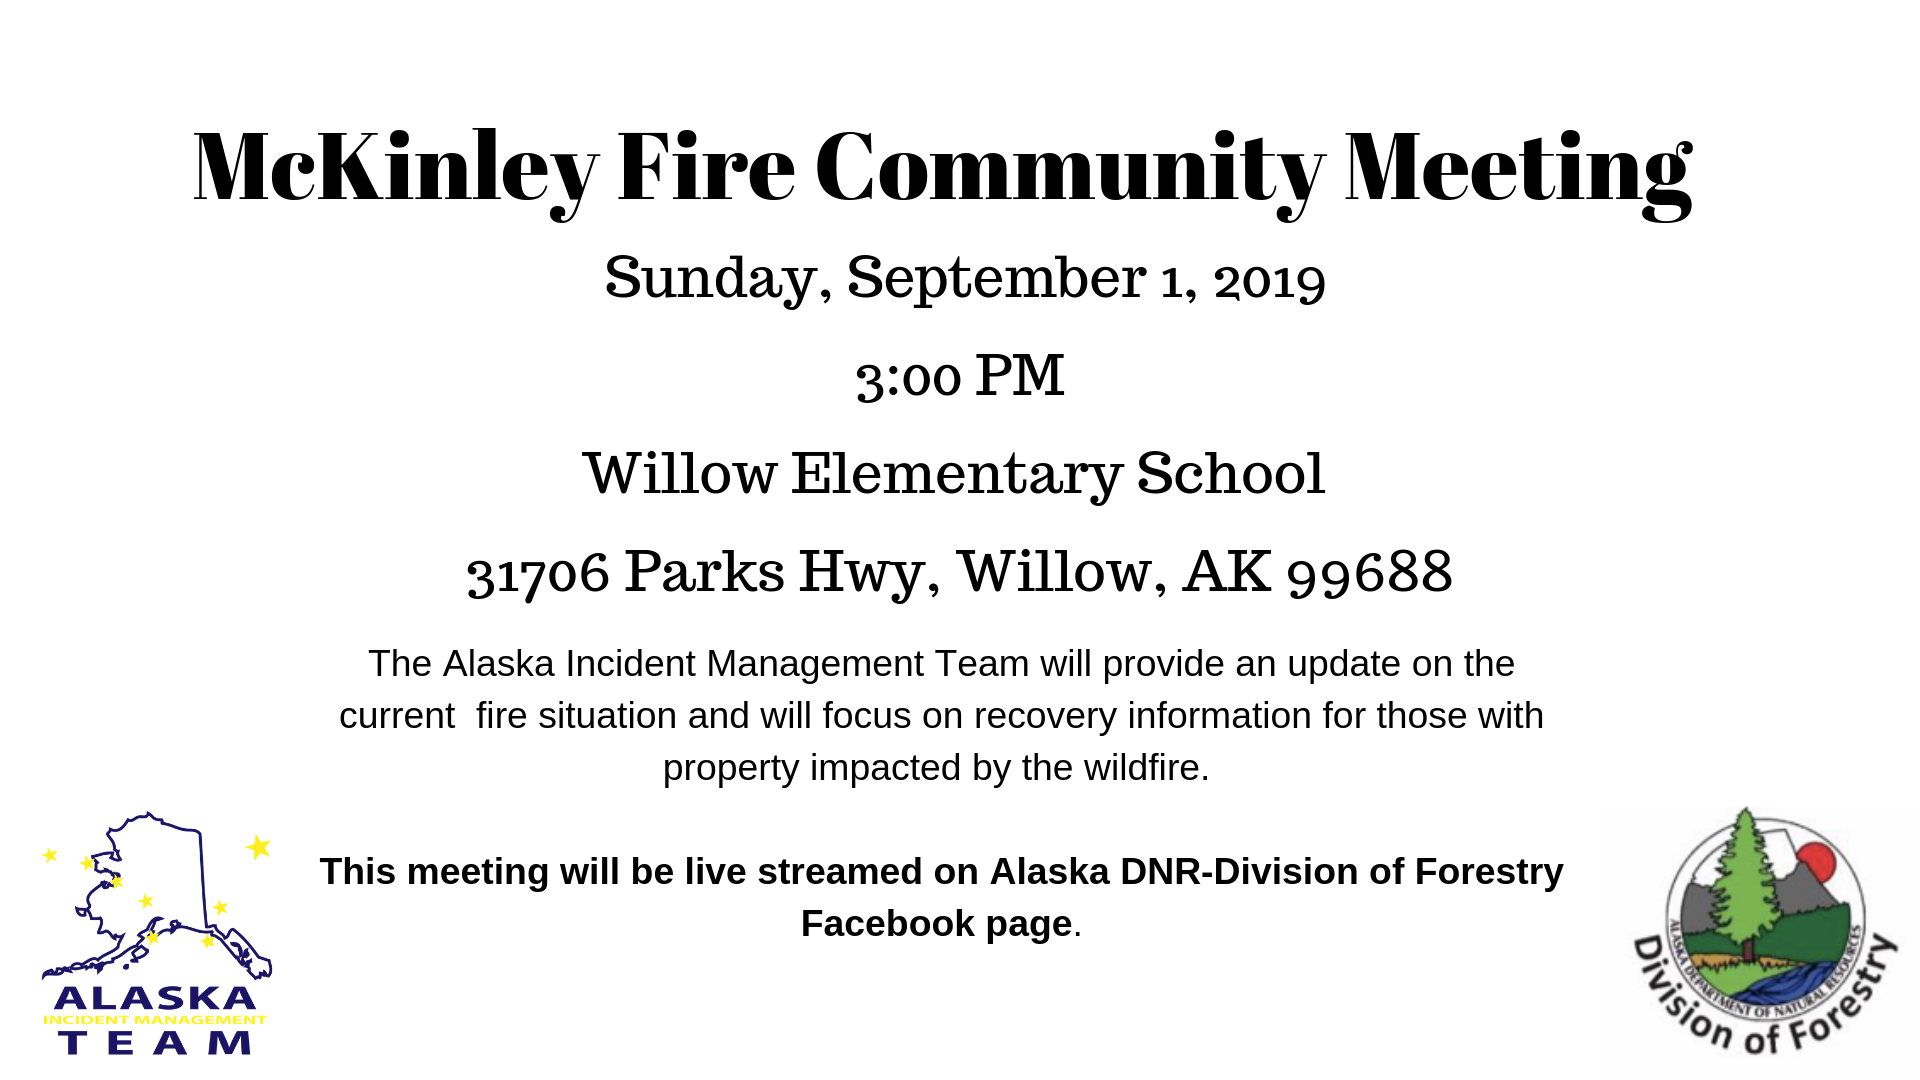 August 27th McKinley Fire Willow Community Meeting